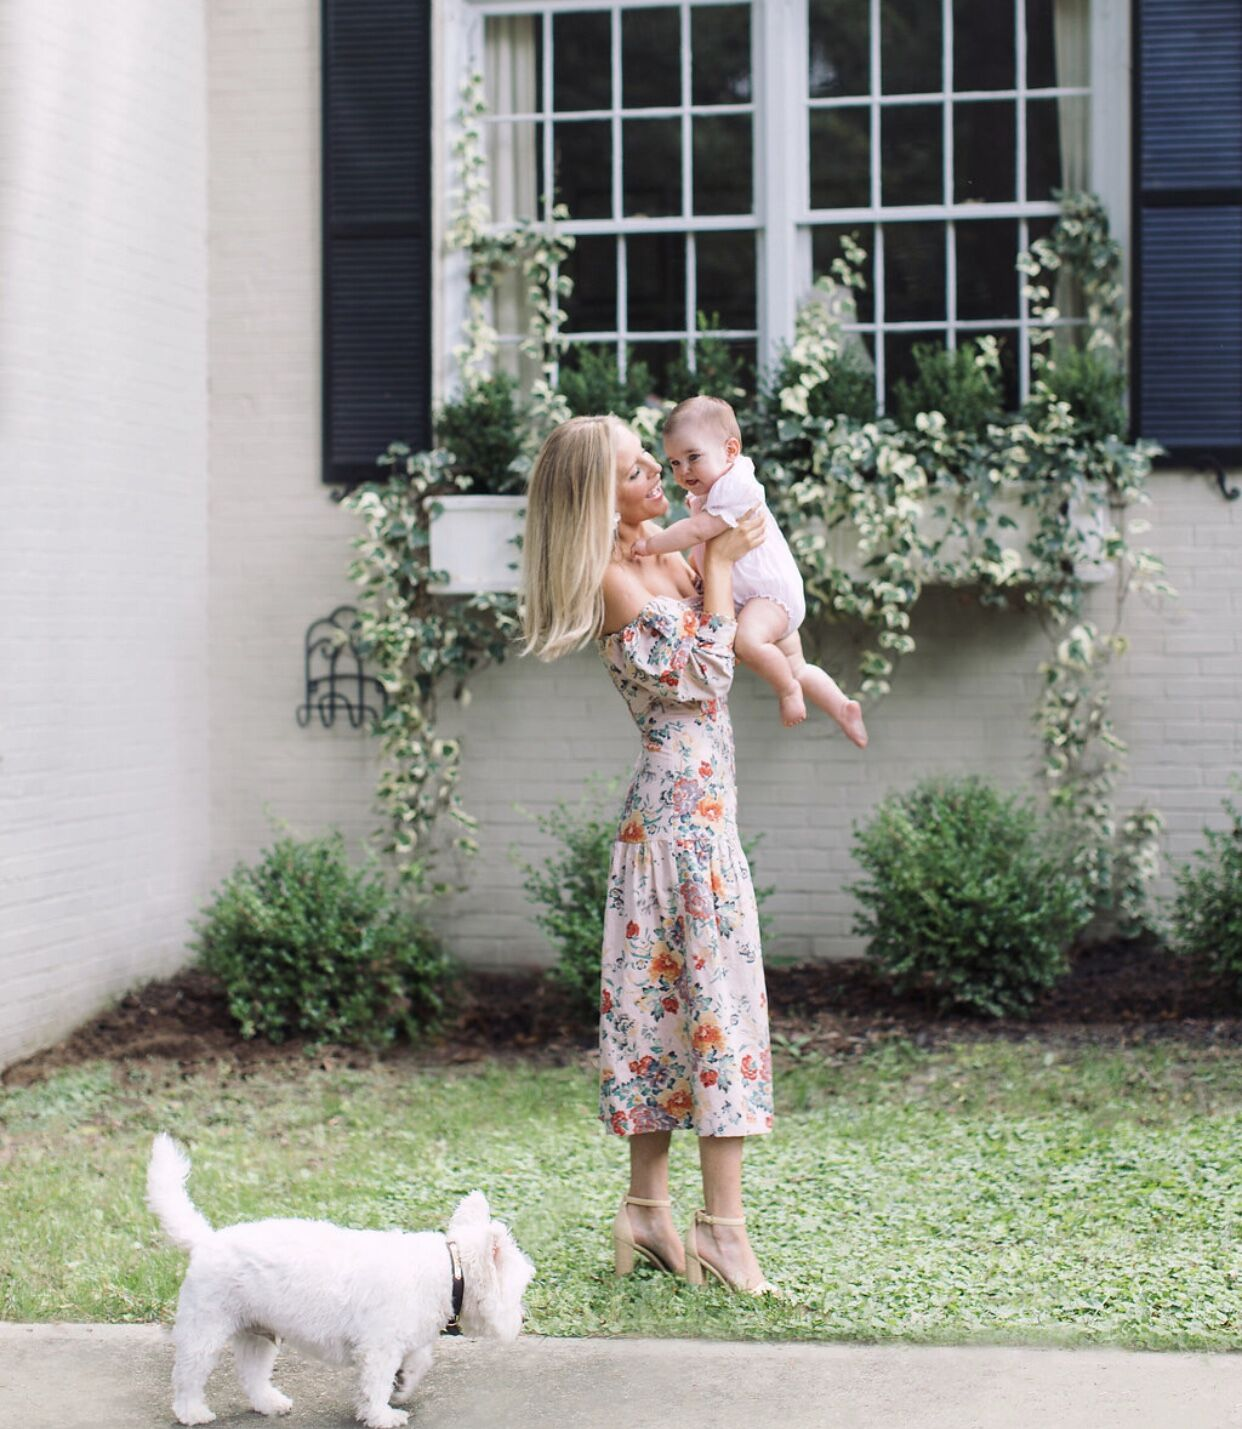 Emily Jackson of Stuffy Muffy with Baby and Dog in Atlanta